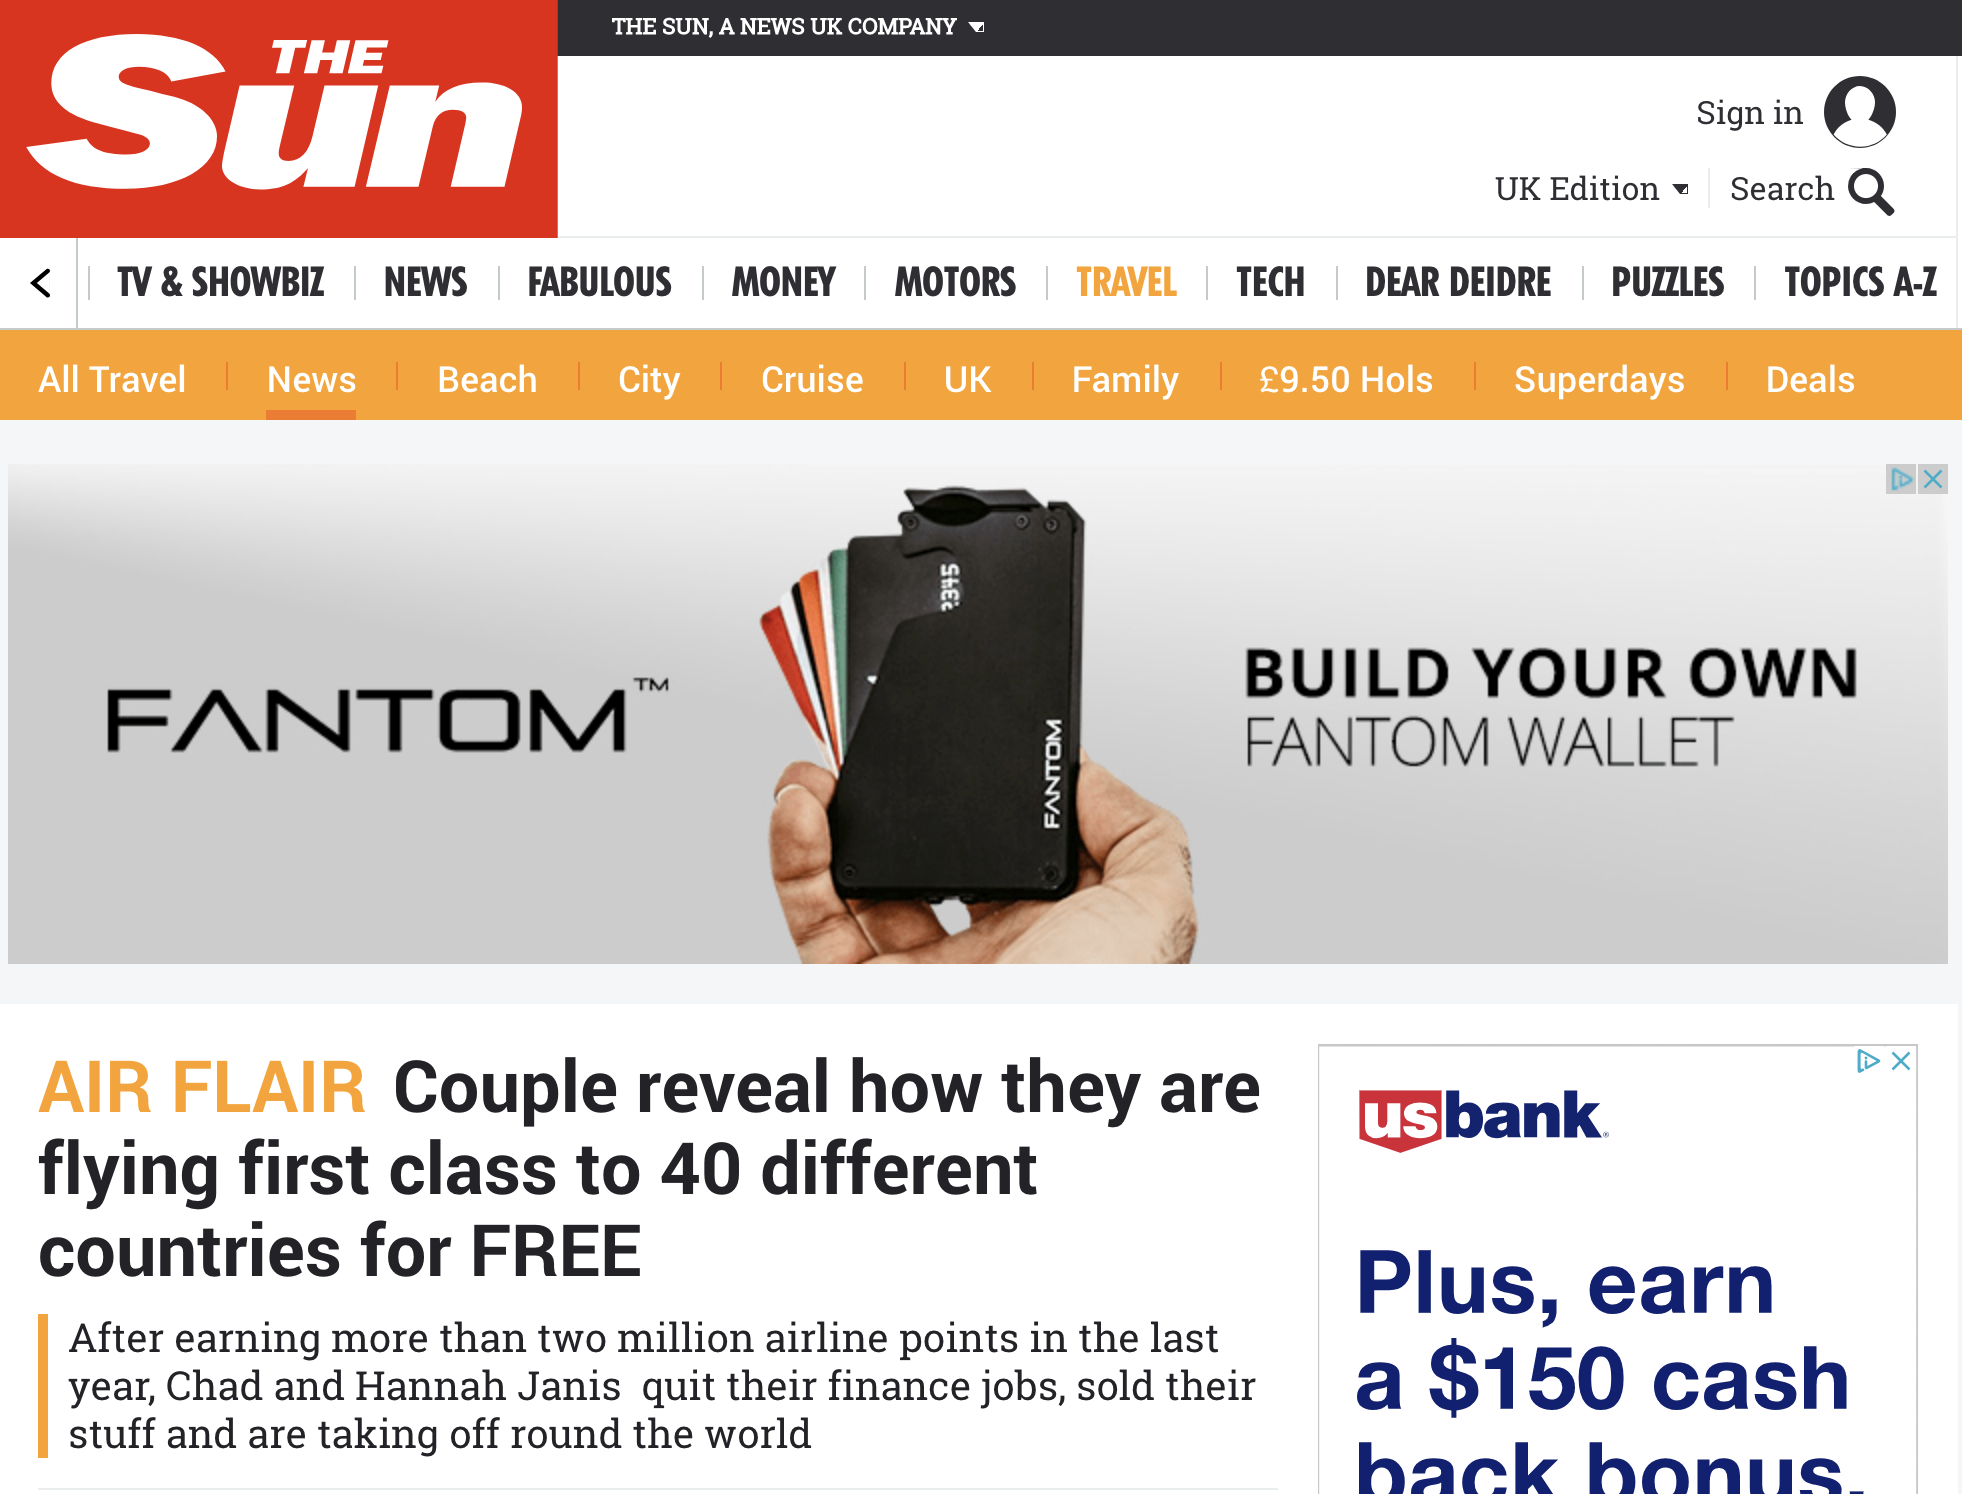 The Sun - Couple reveal how they are flying business class to 40 countries for FREE